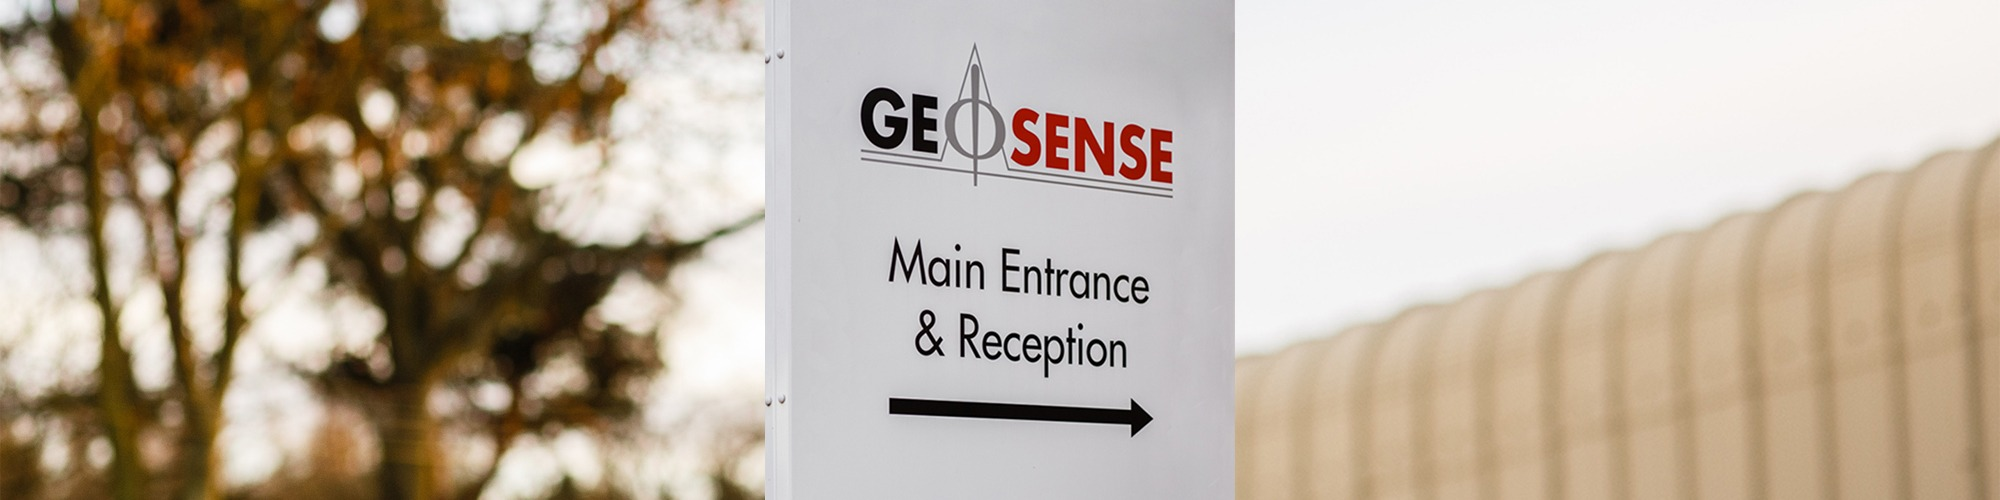 Geosense main entrance and reception sign